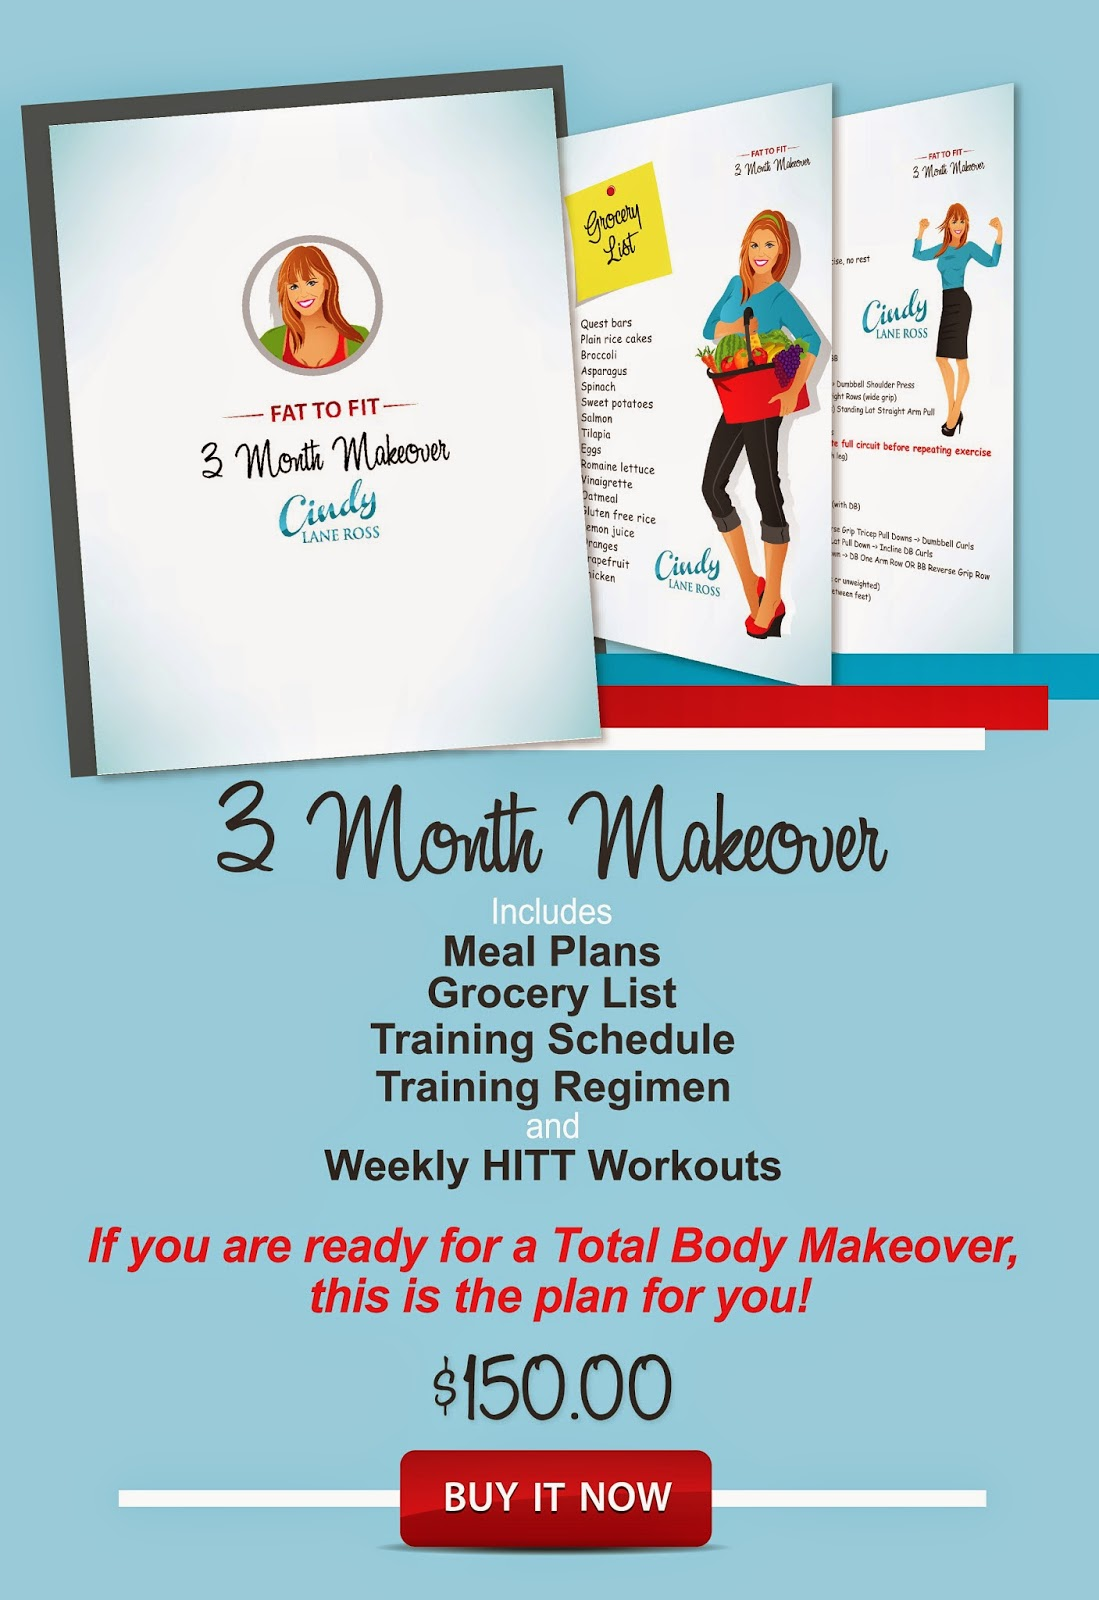 Fat to Fit 3 Month Makeover with Cindy Lane Ross